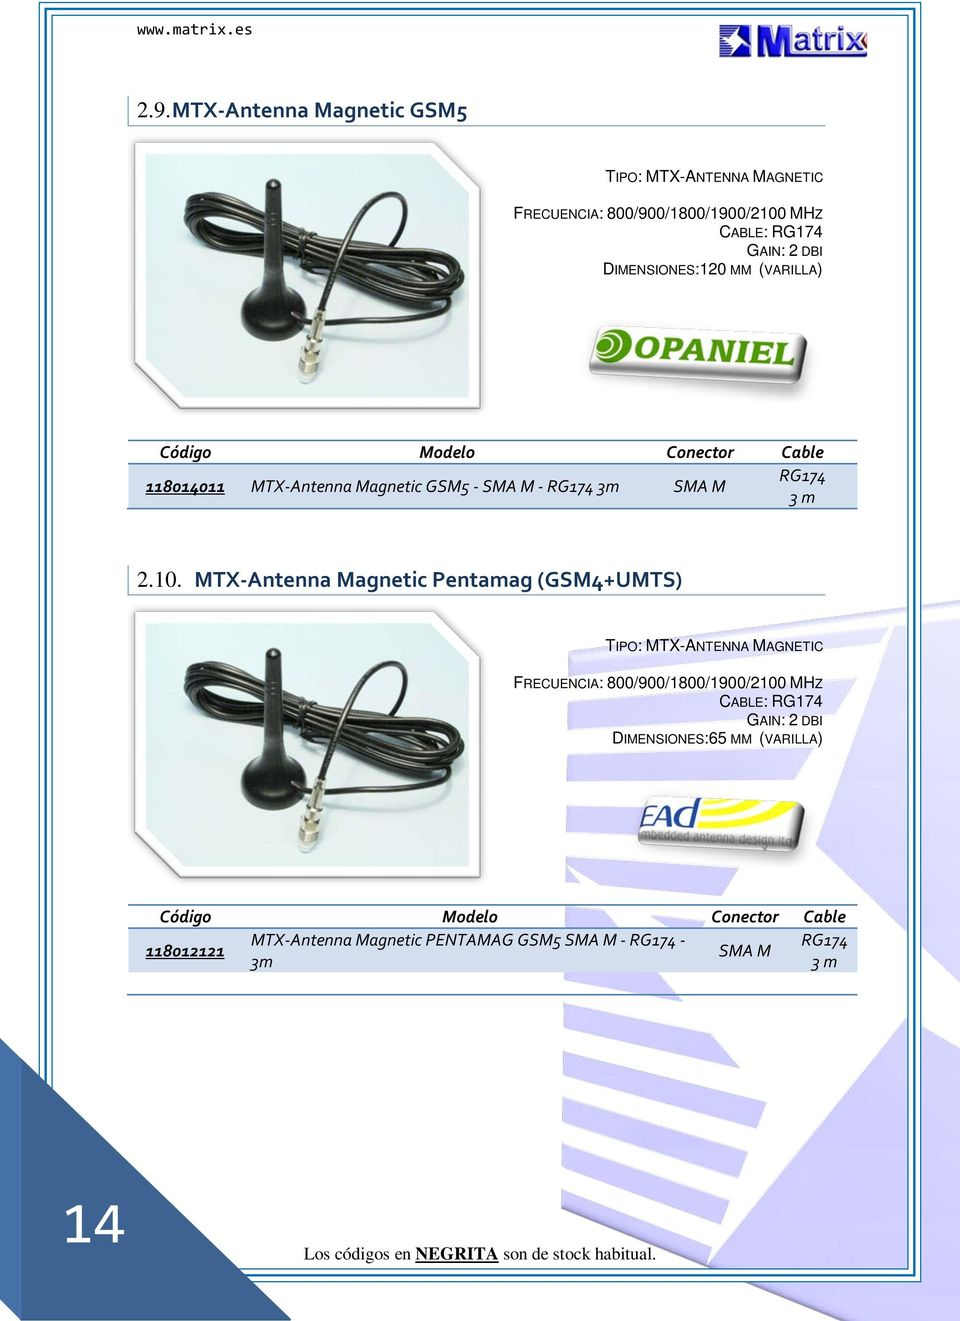 MTX-Antenna Magnetic Pentamag (GSM4+UMTS) TIPO: MTX-ANTENNA MAGNETIC FRECUENCIA: 800/900/1800/1900/2100 MHZ